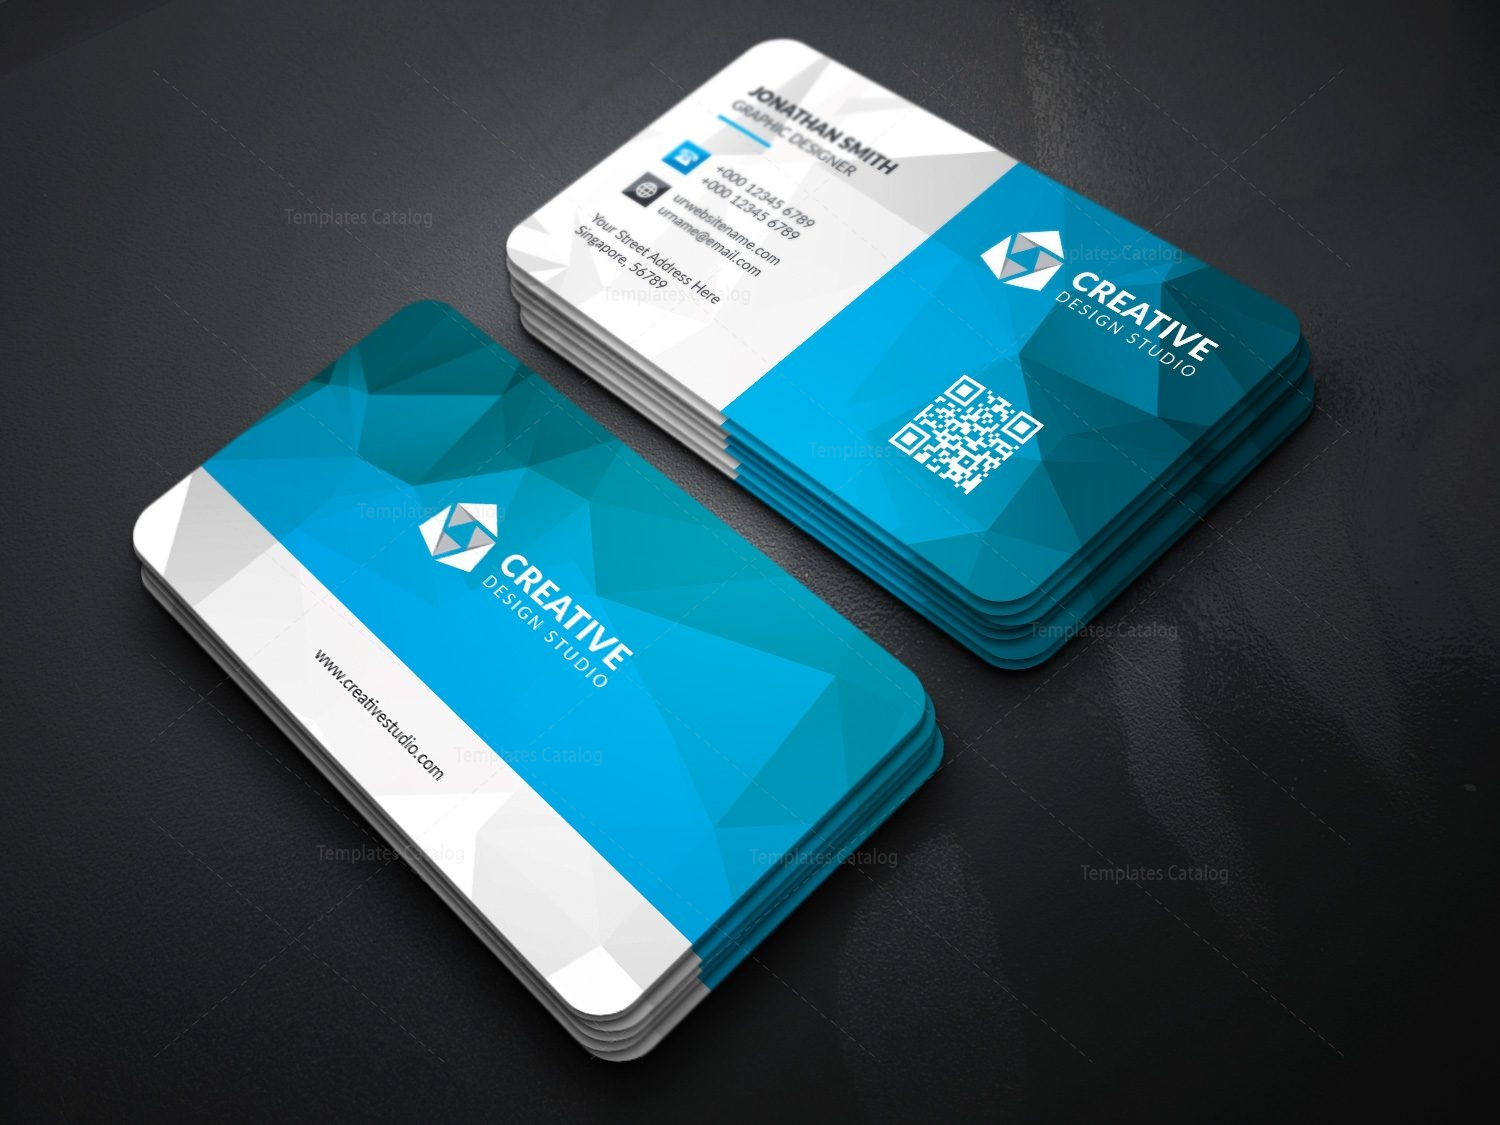 Technology business card templates images templates example free technology business card template 000368 template catalog technology business card template 1 alramifo images magicingreecefo Gallery